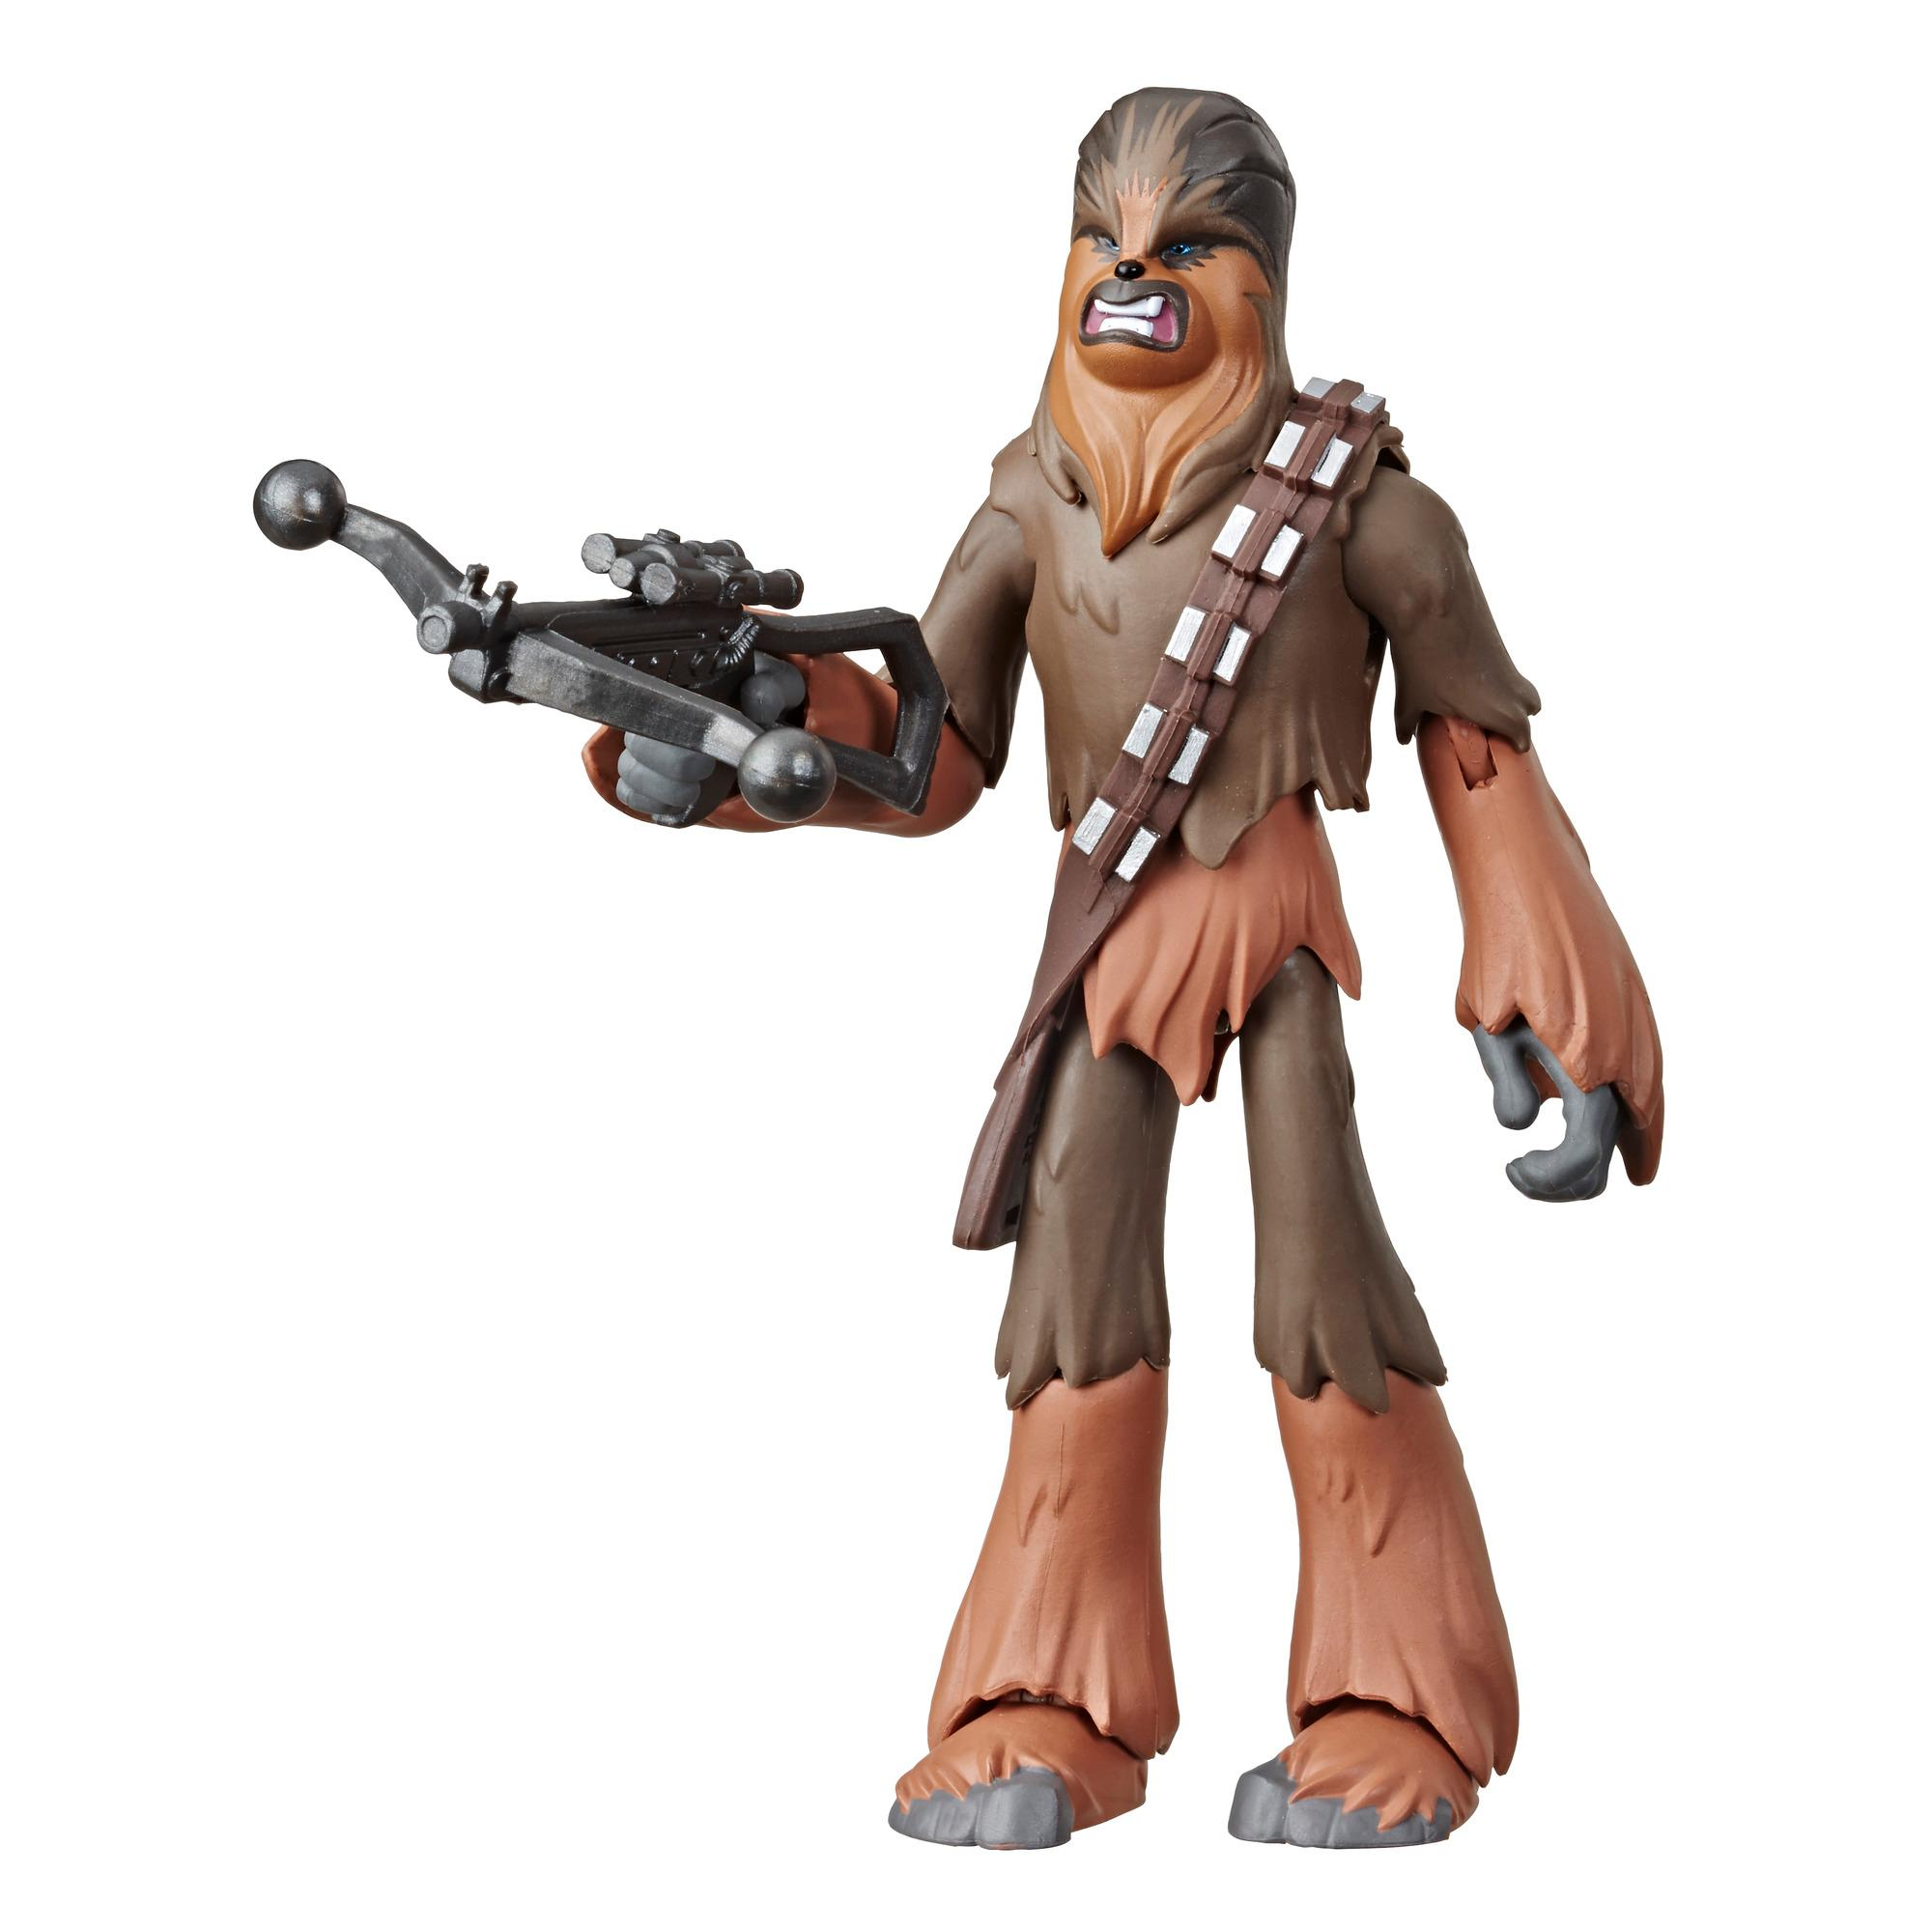 Star Wars Galaxy of Adventures Chewbacca 5-Inch-Scale Action Figure Toy